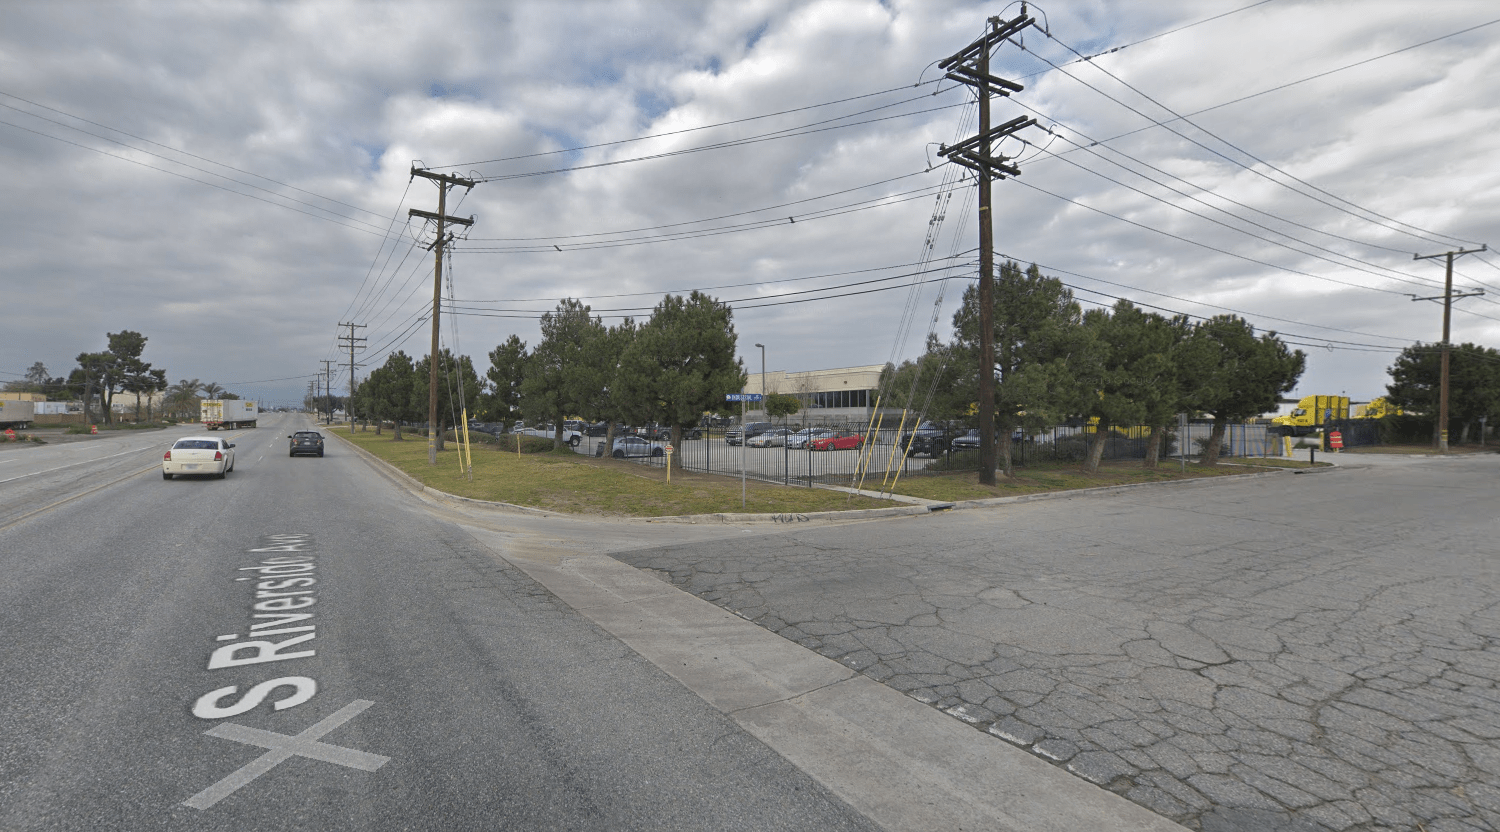 The intersection of Riverside Avenue and Industrial Drive in Rialto is seen in a Google Maps Street View image on June 12, 2019.